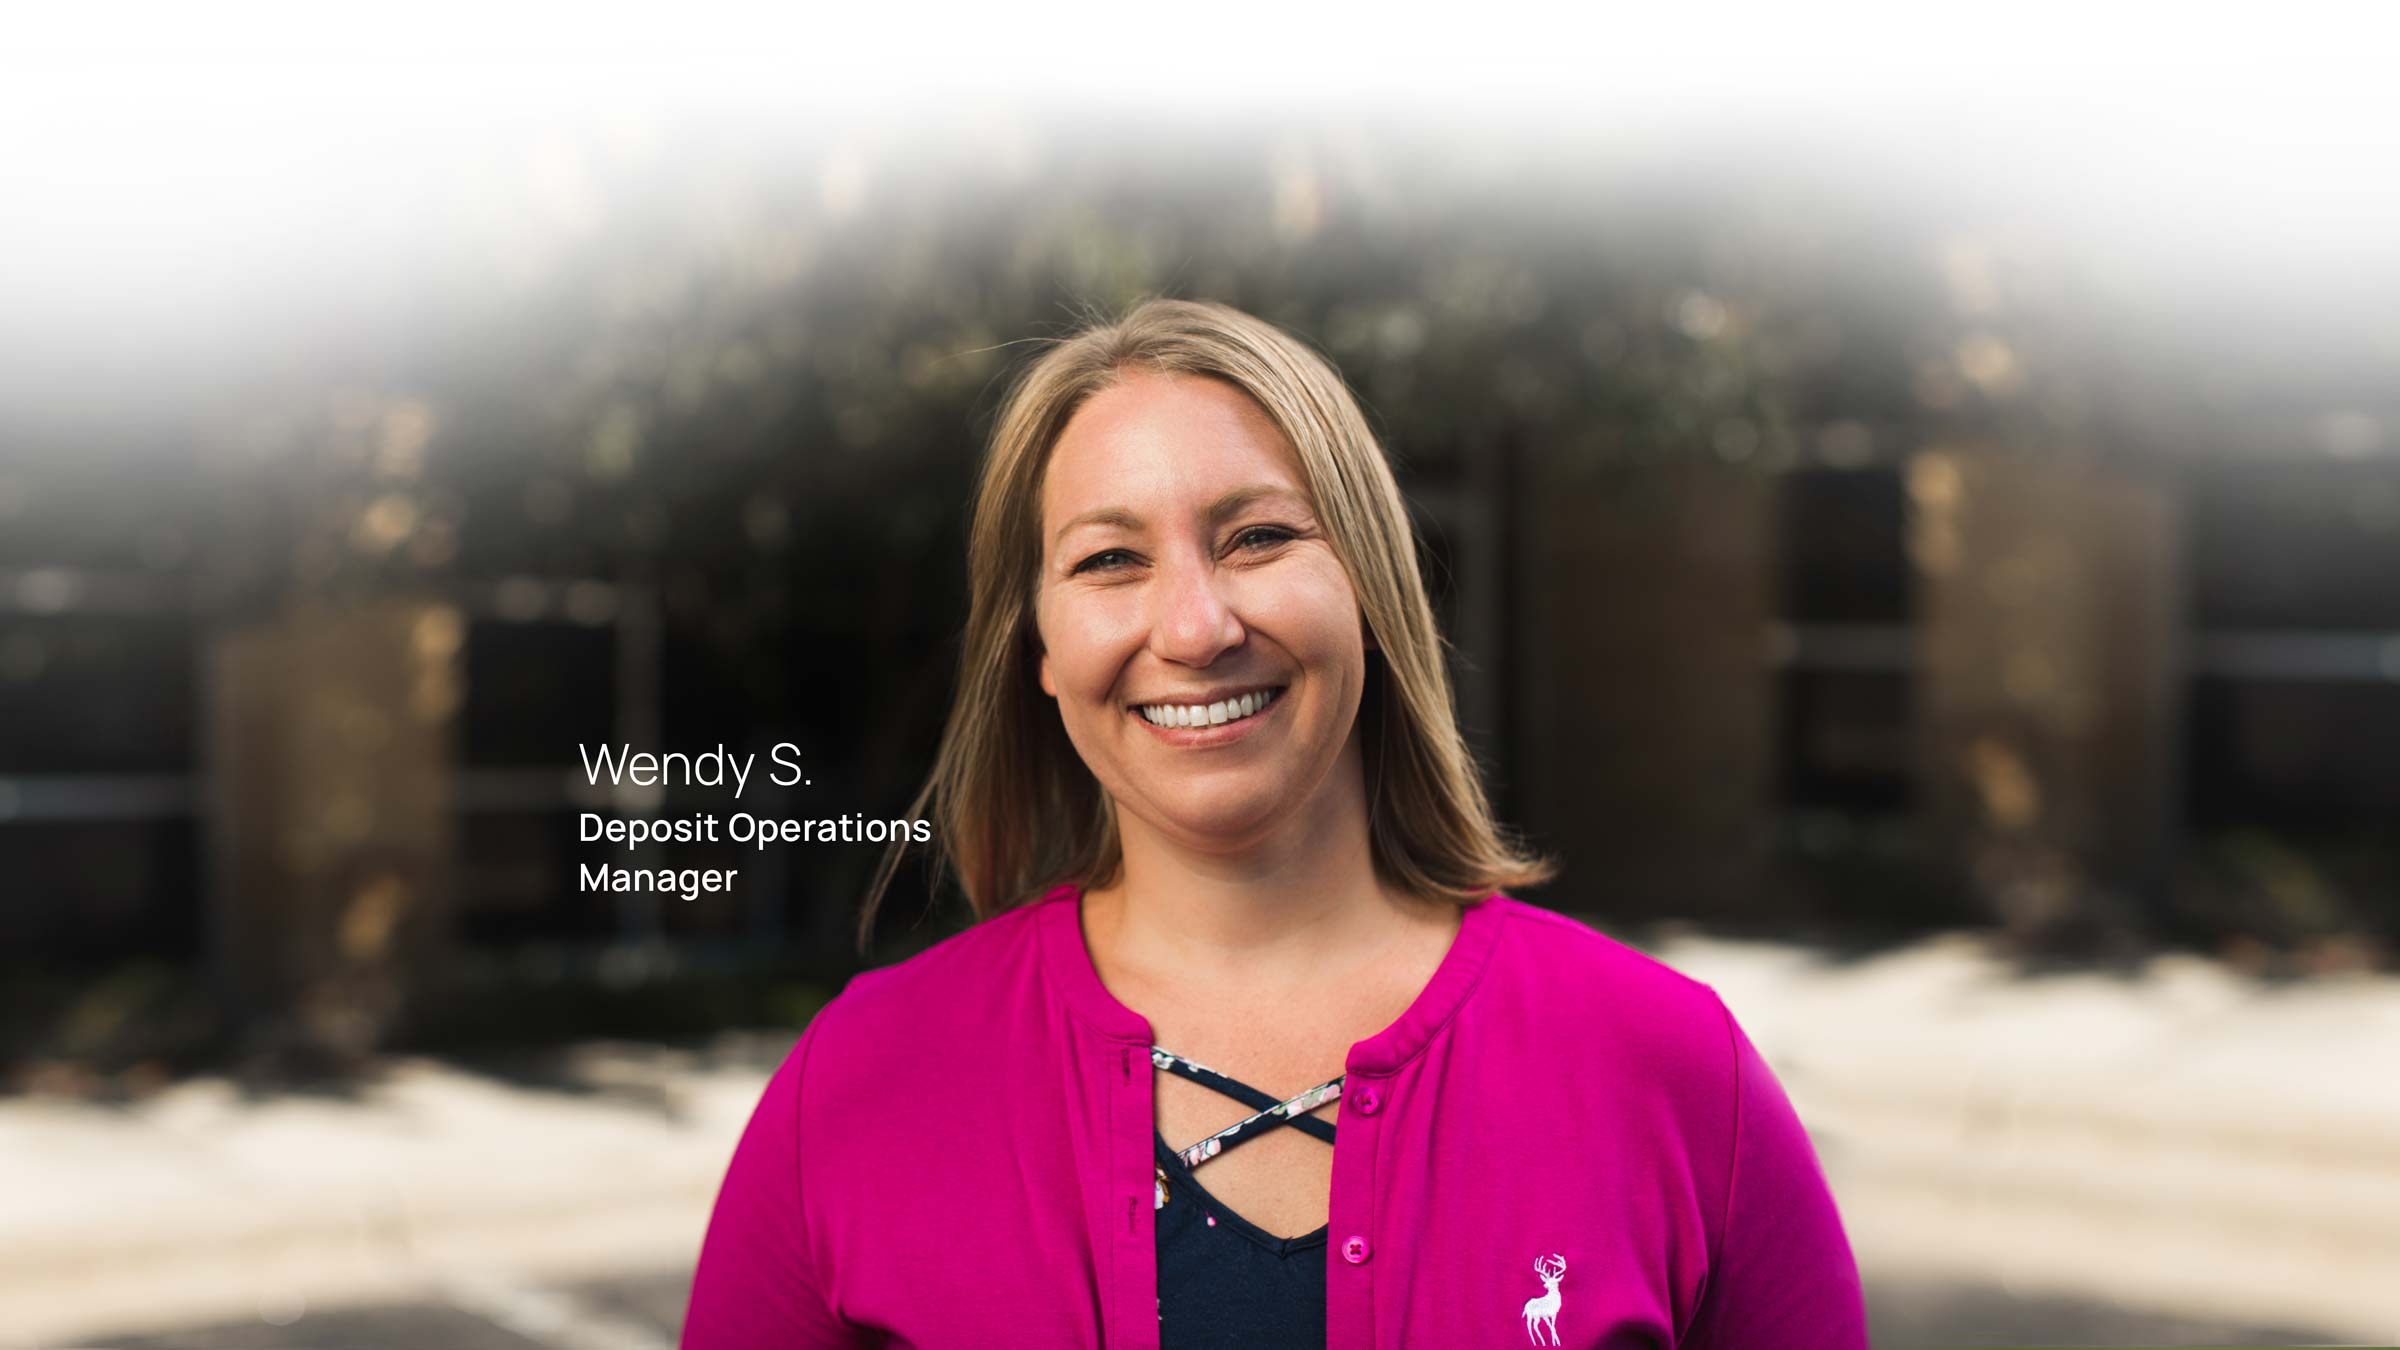 Wendy S. Deposit Operations Manager